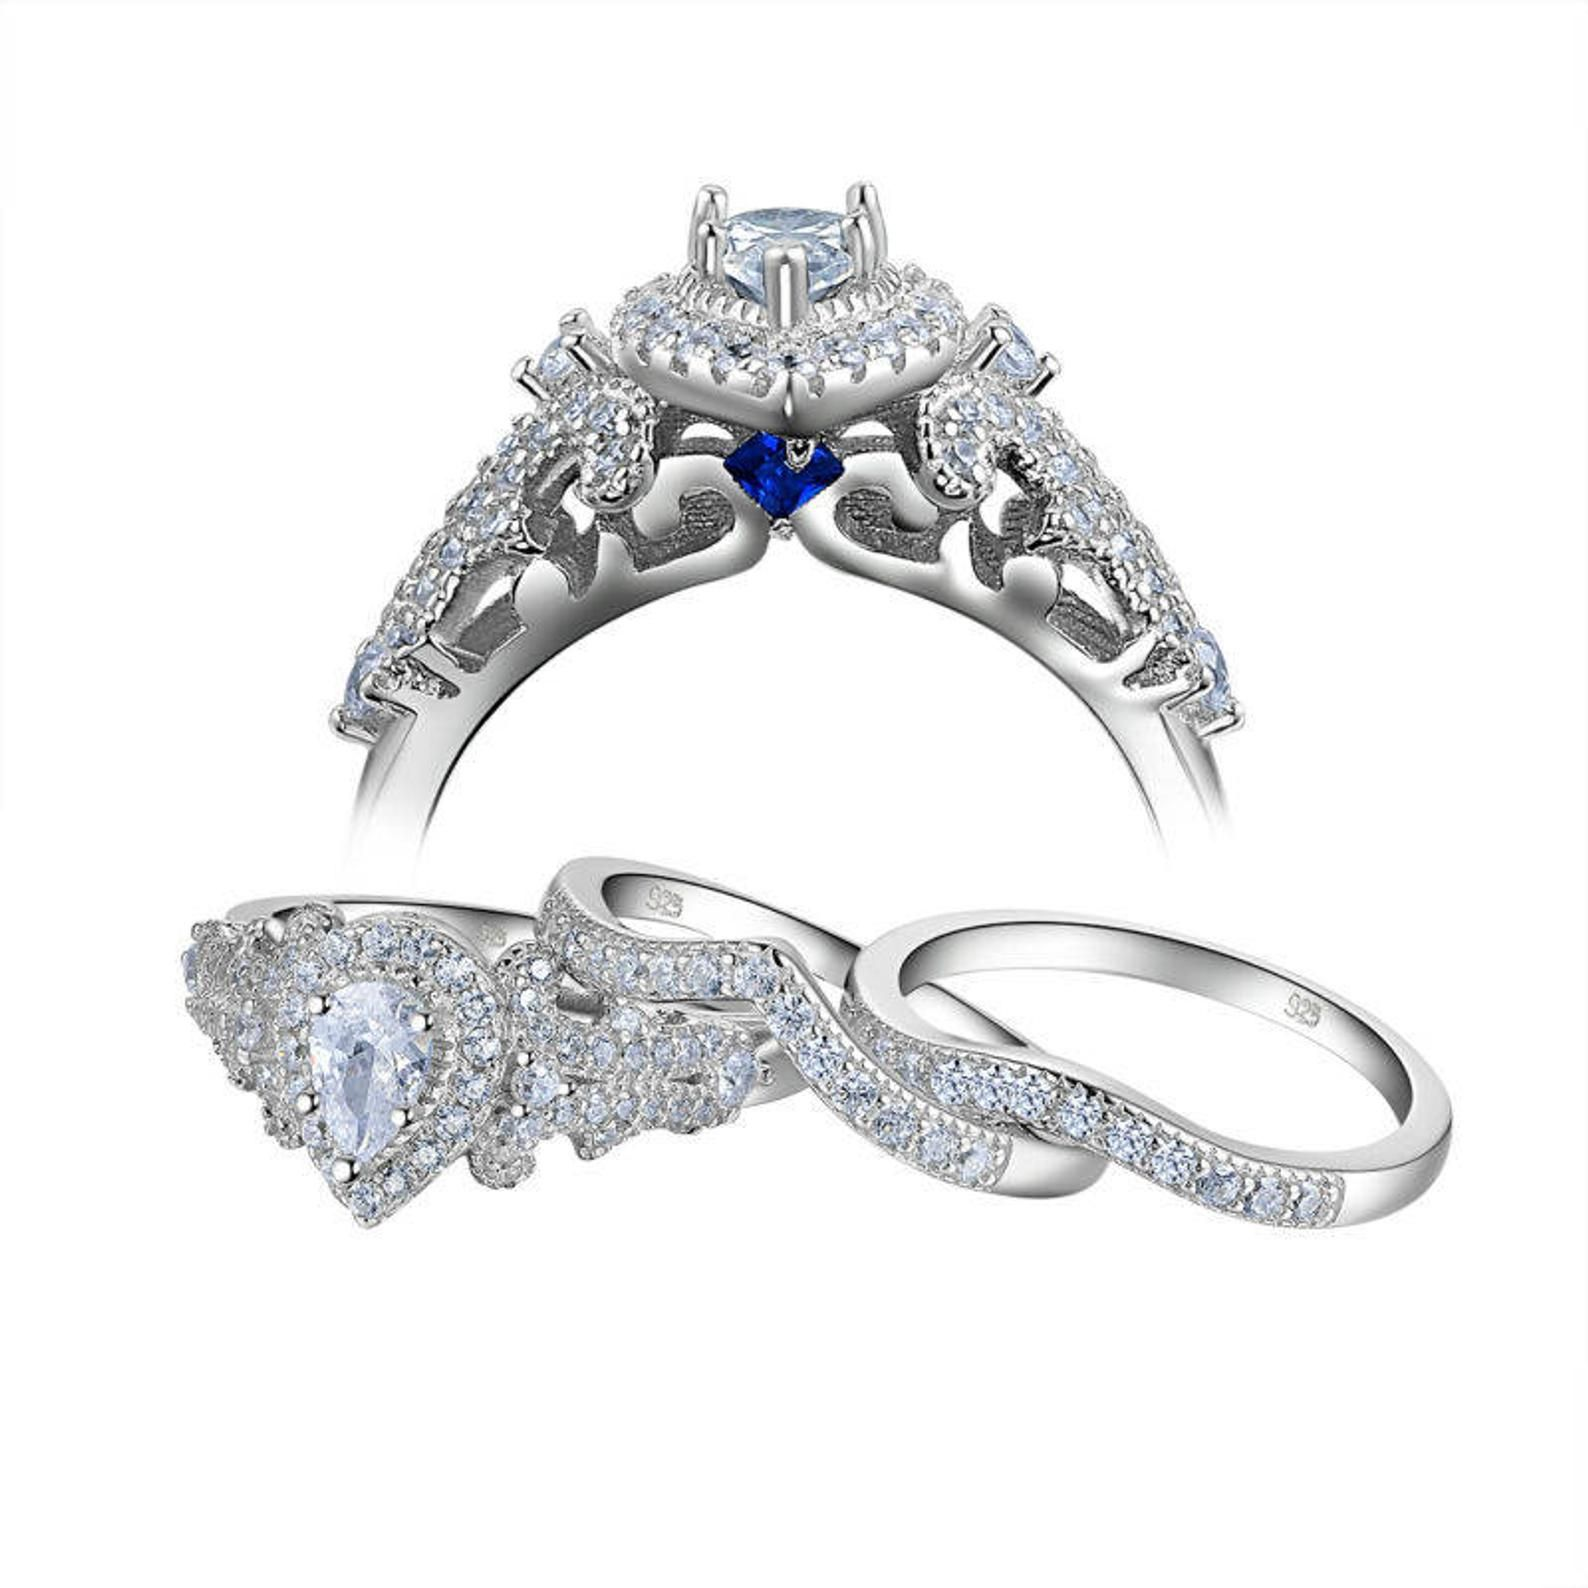 Sparkelforever 2017 New Arrival 925 Sterling Silver Ring Set 1 3 Ct Aaa Cz 3 Pcs Wedding Sets Fashion Jewelry For Women Nr50151 In 2020 Sterling Silver Rings Set Silver Wedding Rings Wedding Rings Engagement